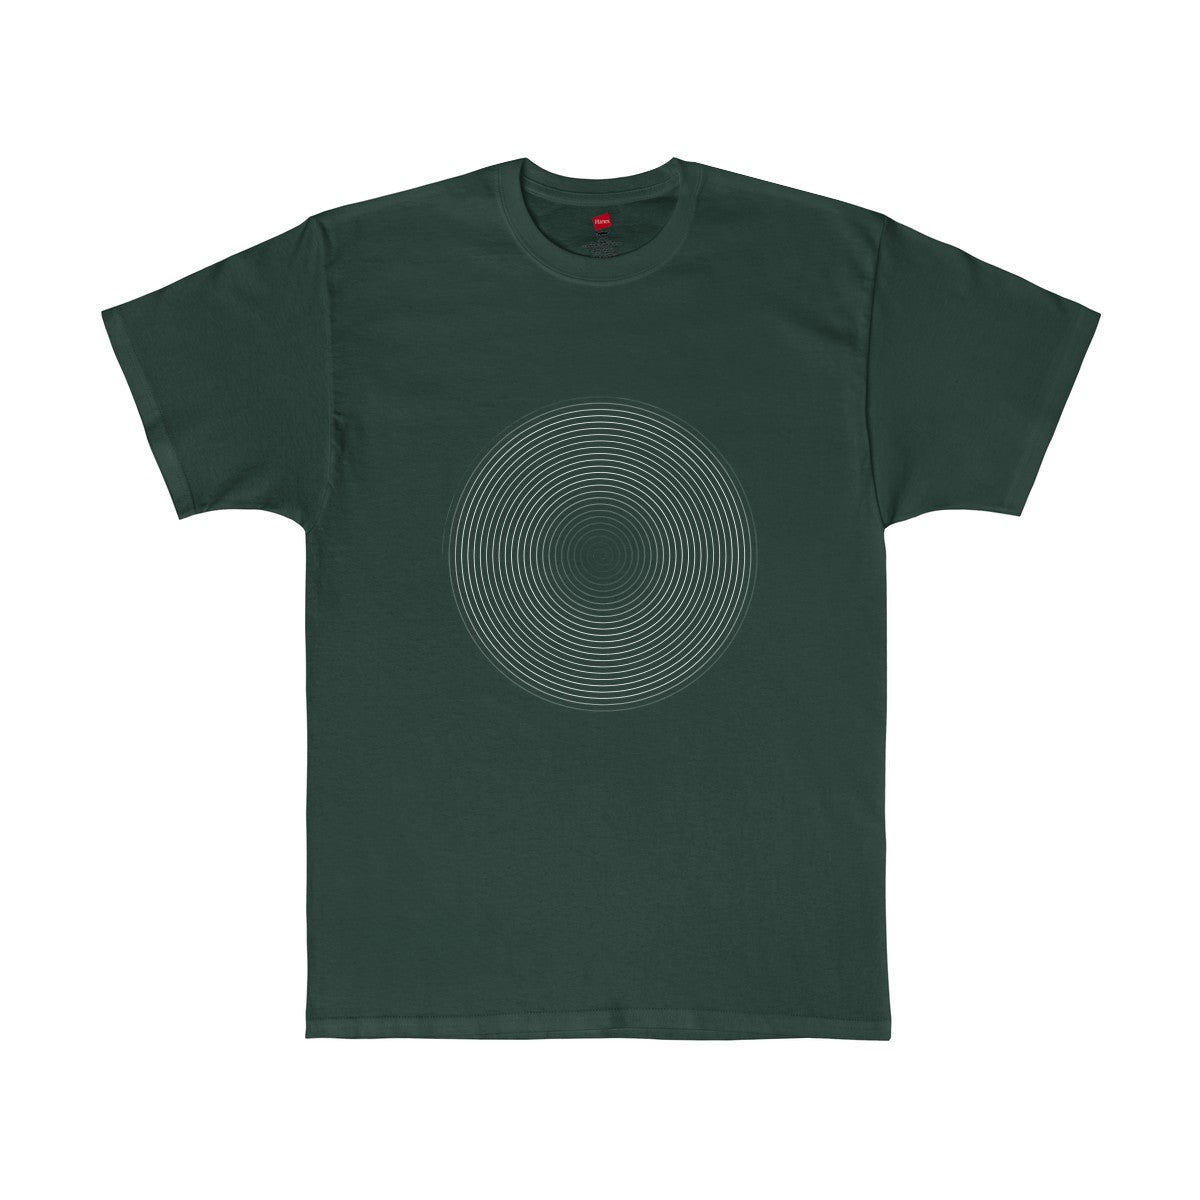 White Spiral 2 Tagless T-Shirt